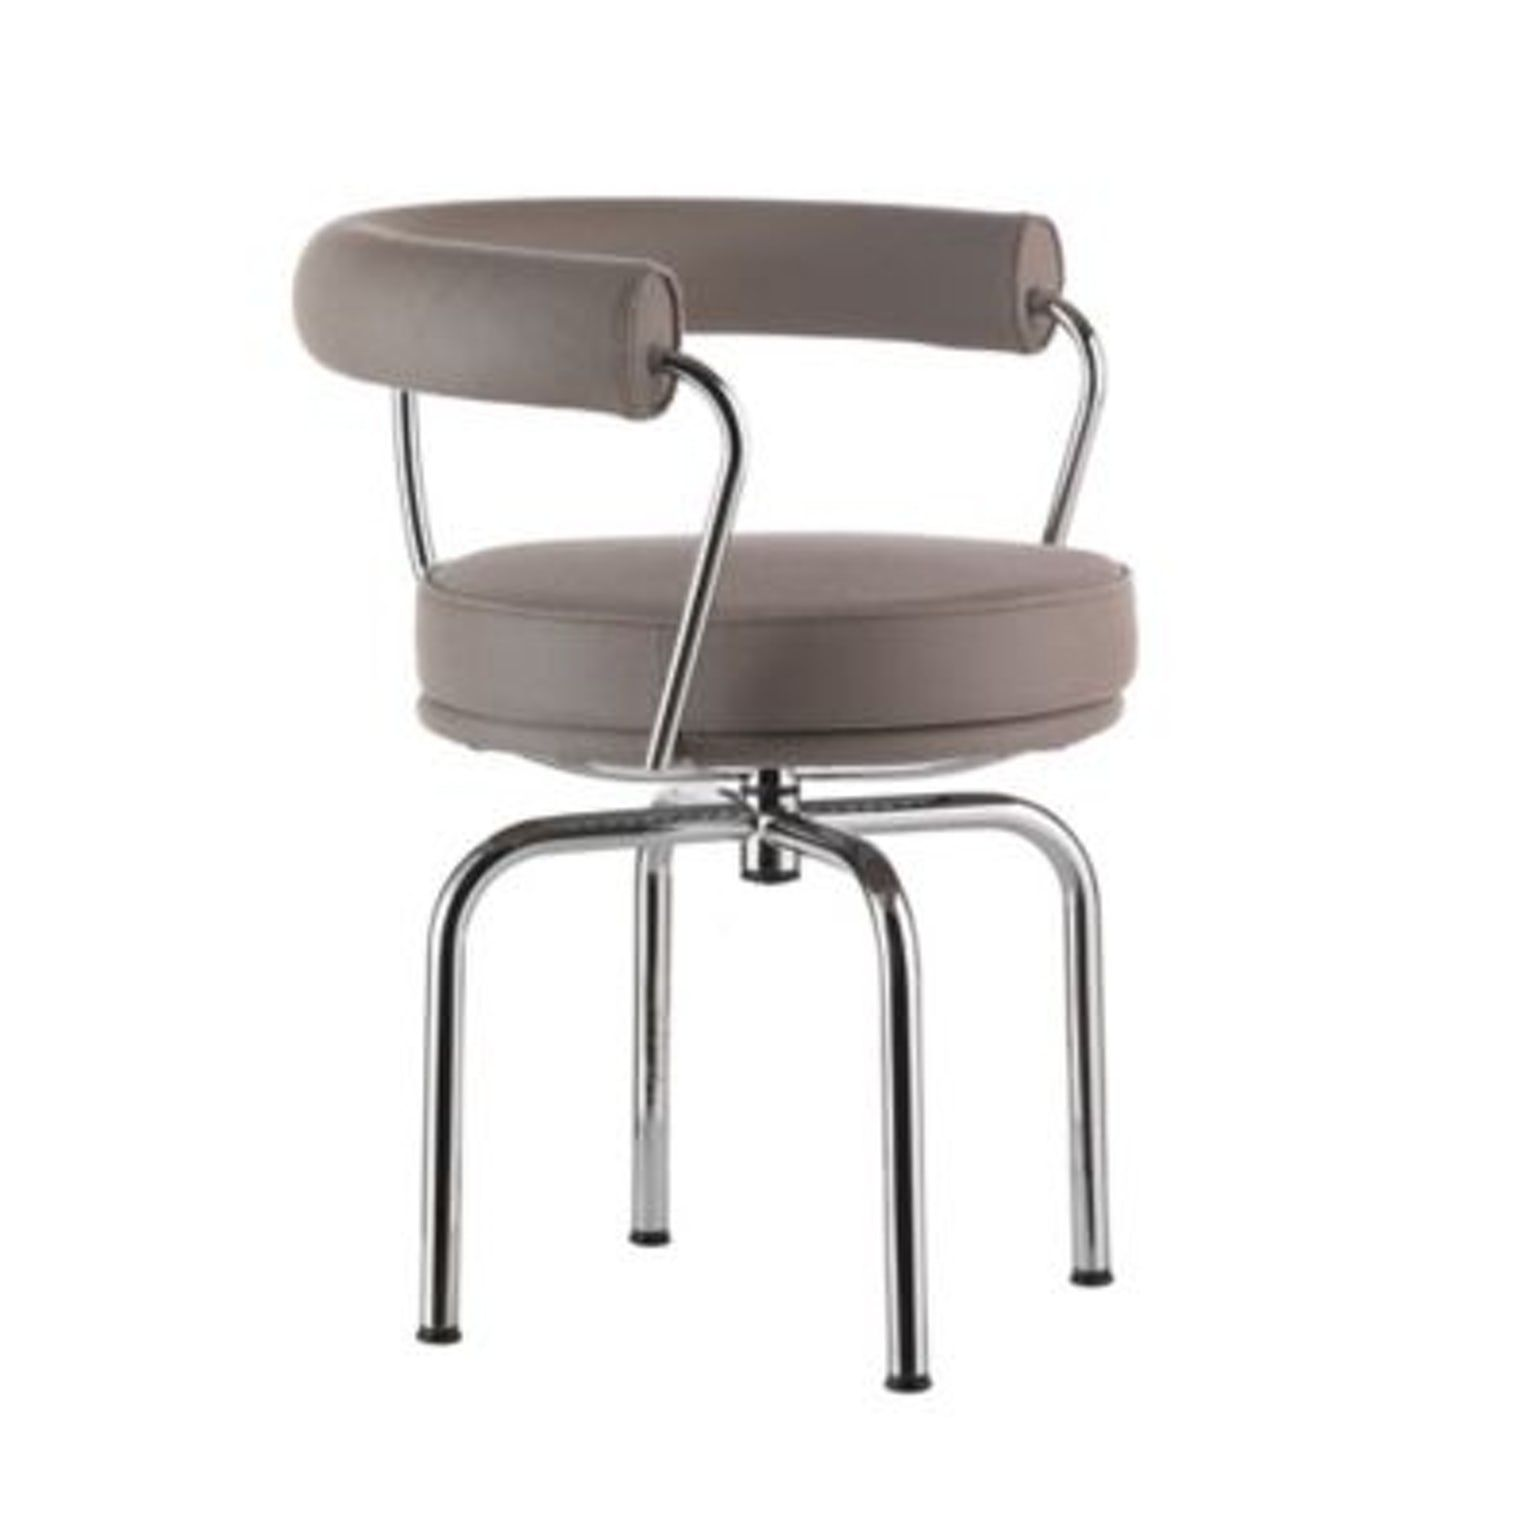 Outdoor Lc7 Swivel Chair Swivel Chair By Design Within Reach